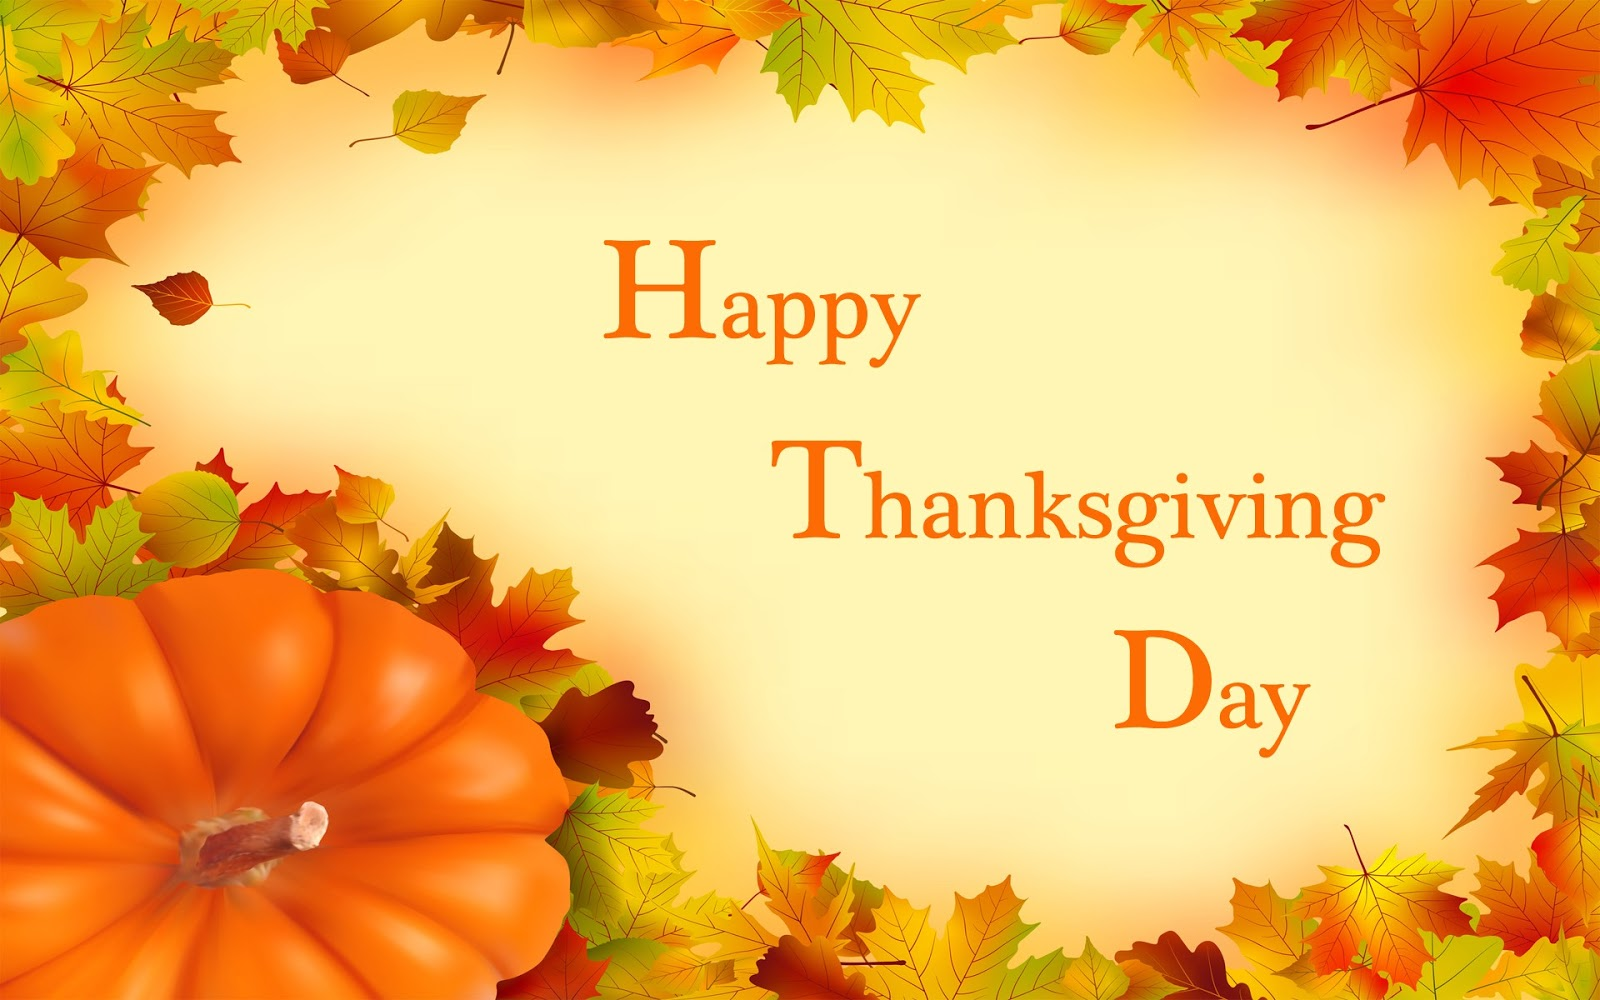 Thanksgiving Inspirational Quotes Happy Thanksgiving Day Quotes & Sayings  Inspirational Quotes